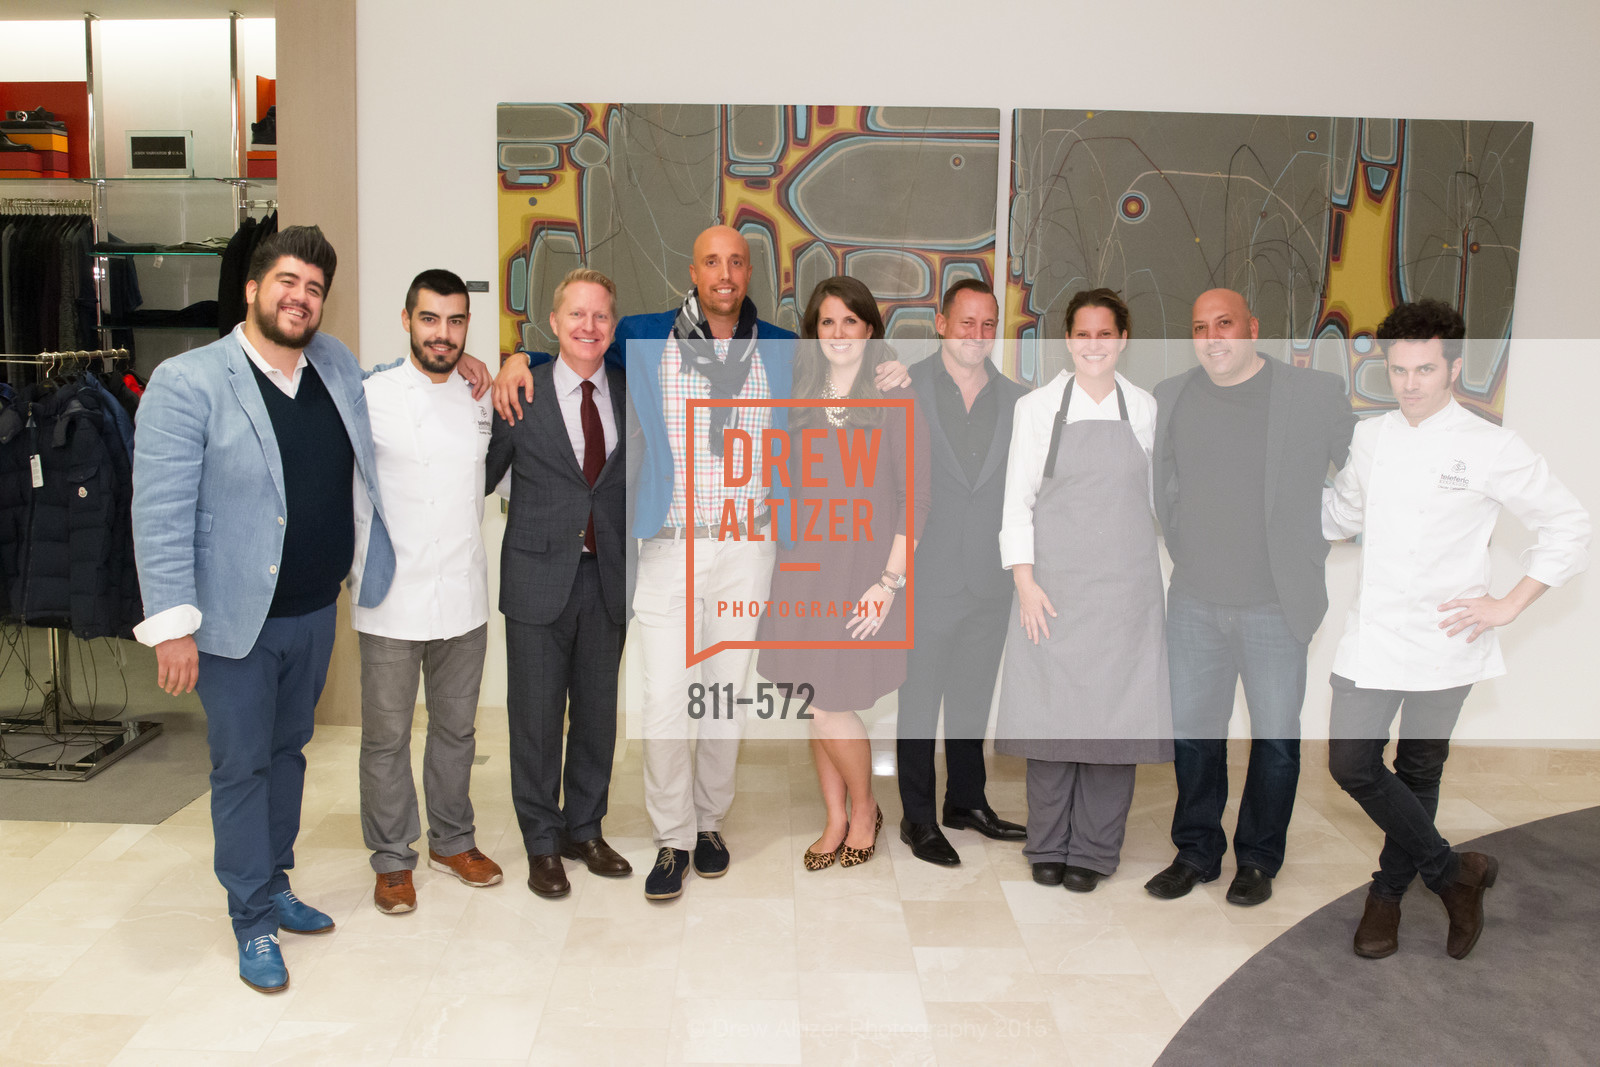 Paul Iglesias, Rodrigo Vasquez, Jamie Broadhurst, Xavi Padrosa, Meghan Murray, Jim Telford, Justine Kelly, Jeff Dudum, Oscar Cabezas, Neiman Marcus Walnut Creek welcomes neighbors ROOFTOP and Teleferic Barcelona, Neiman Marcus. 1000 South Main Street, November 20th, 2015,Drew Altizer, Drew Altizer Photography, full-service agency, private events, San Francisco photographer, photographer california